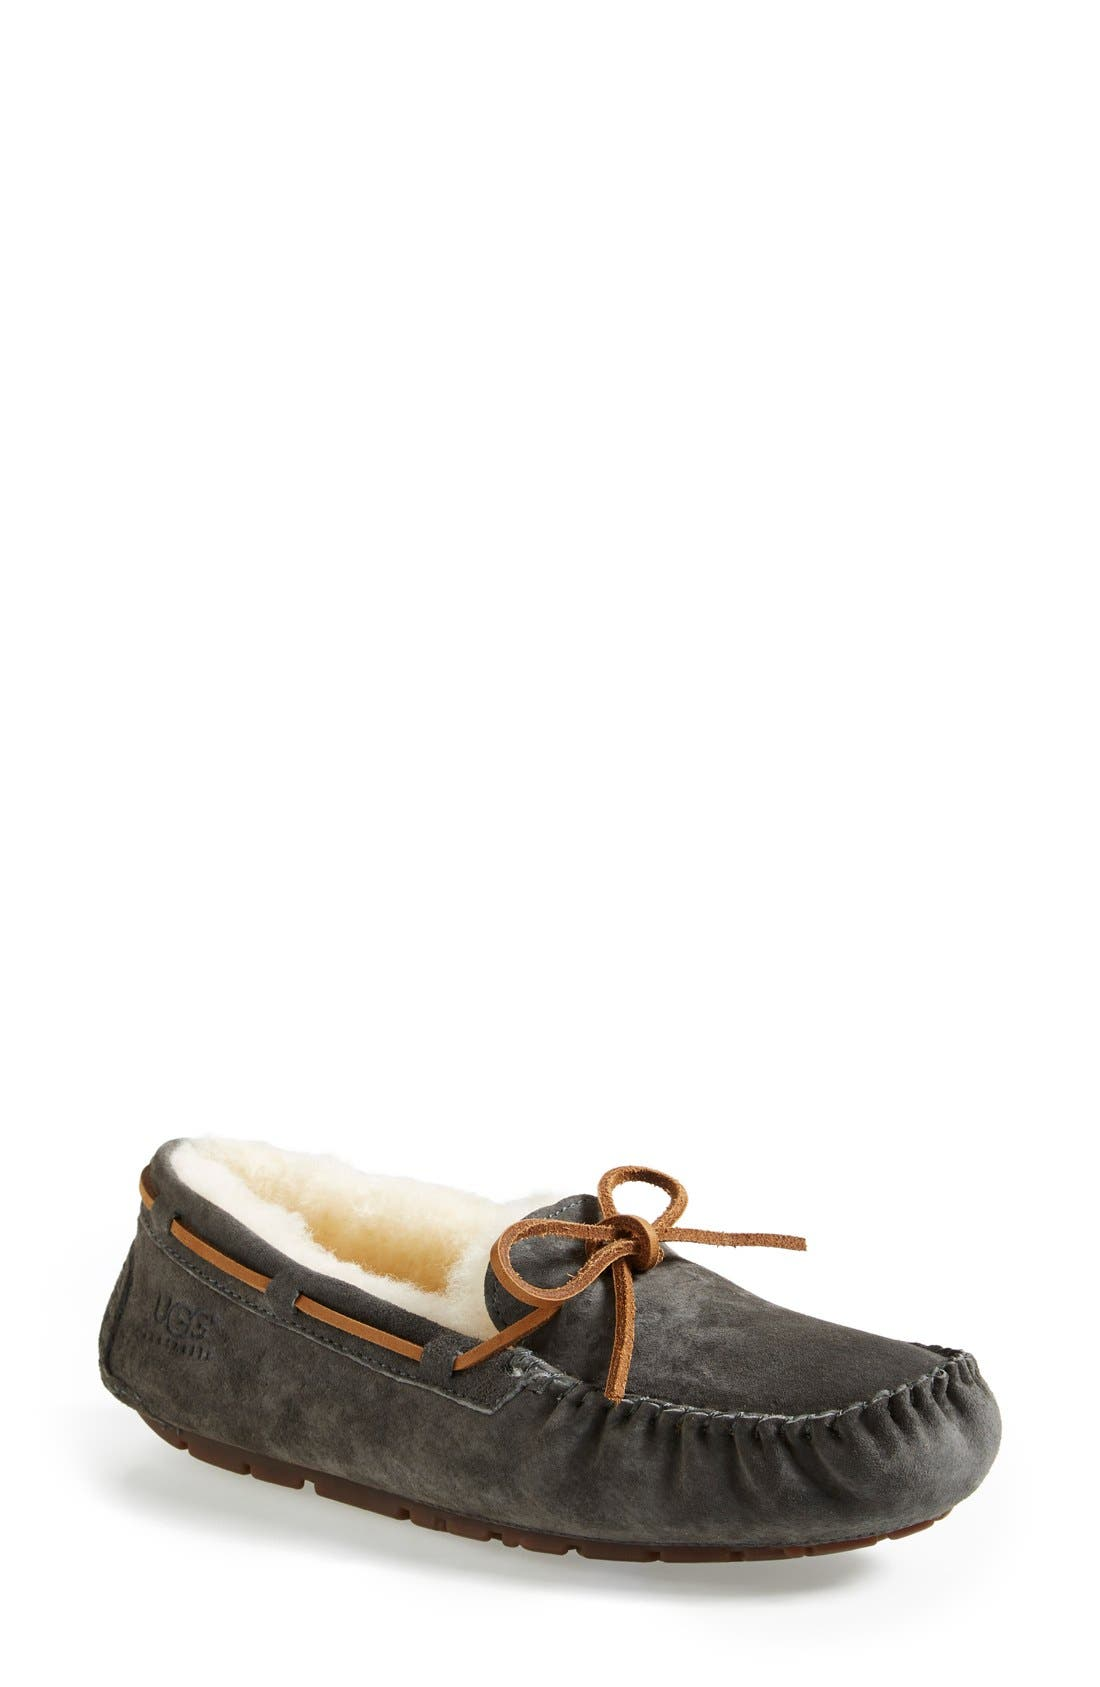 Main Image - UGG® Dakota Slipper (Women)